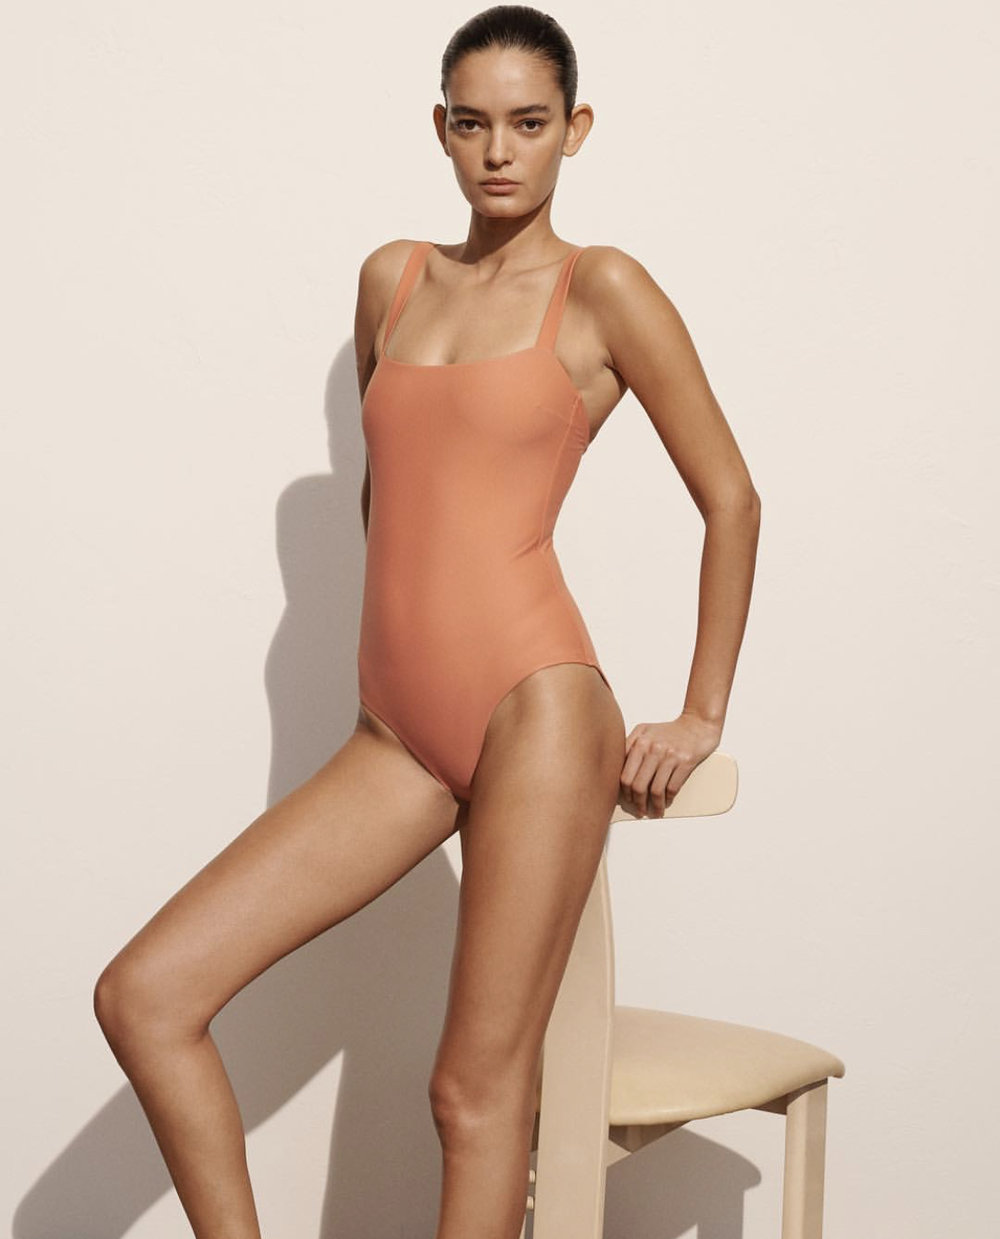 Matteau Swim - Founded by Ilona Hamer and Peta Heinsen